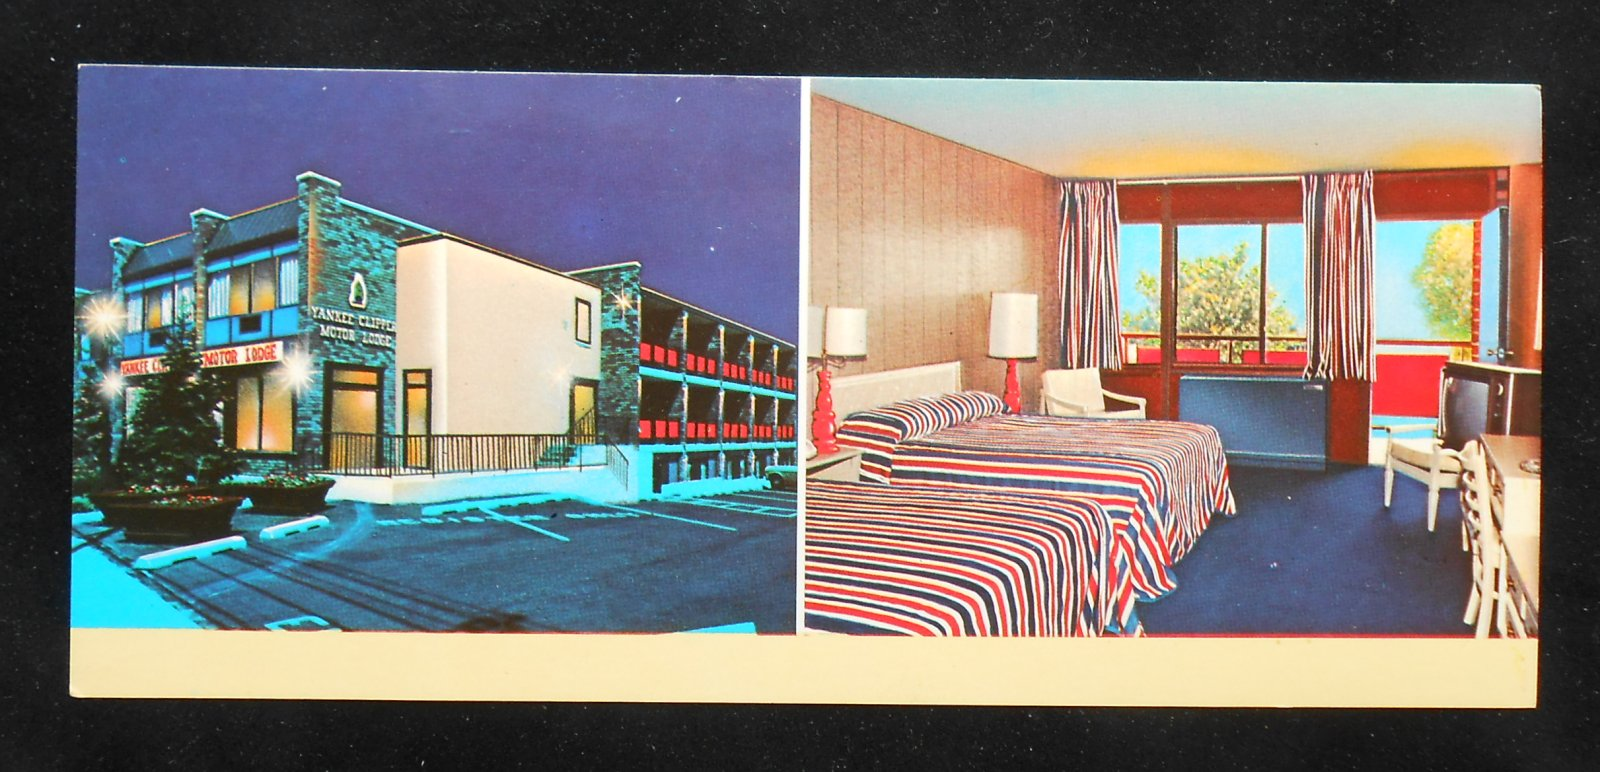 1970s Extra Long Yankee Clipper Motor Lodge 295 South Main